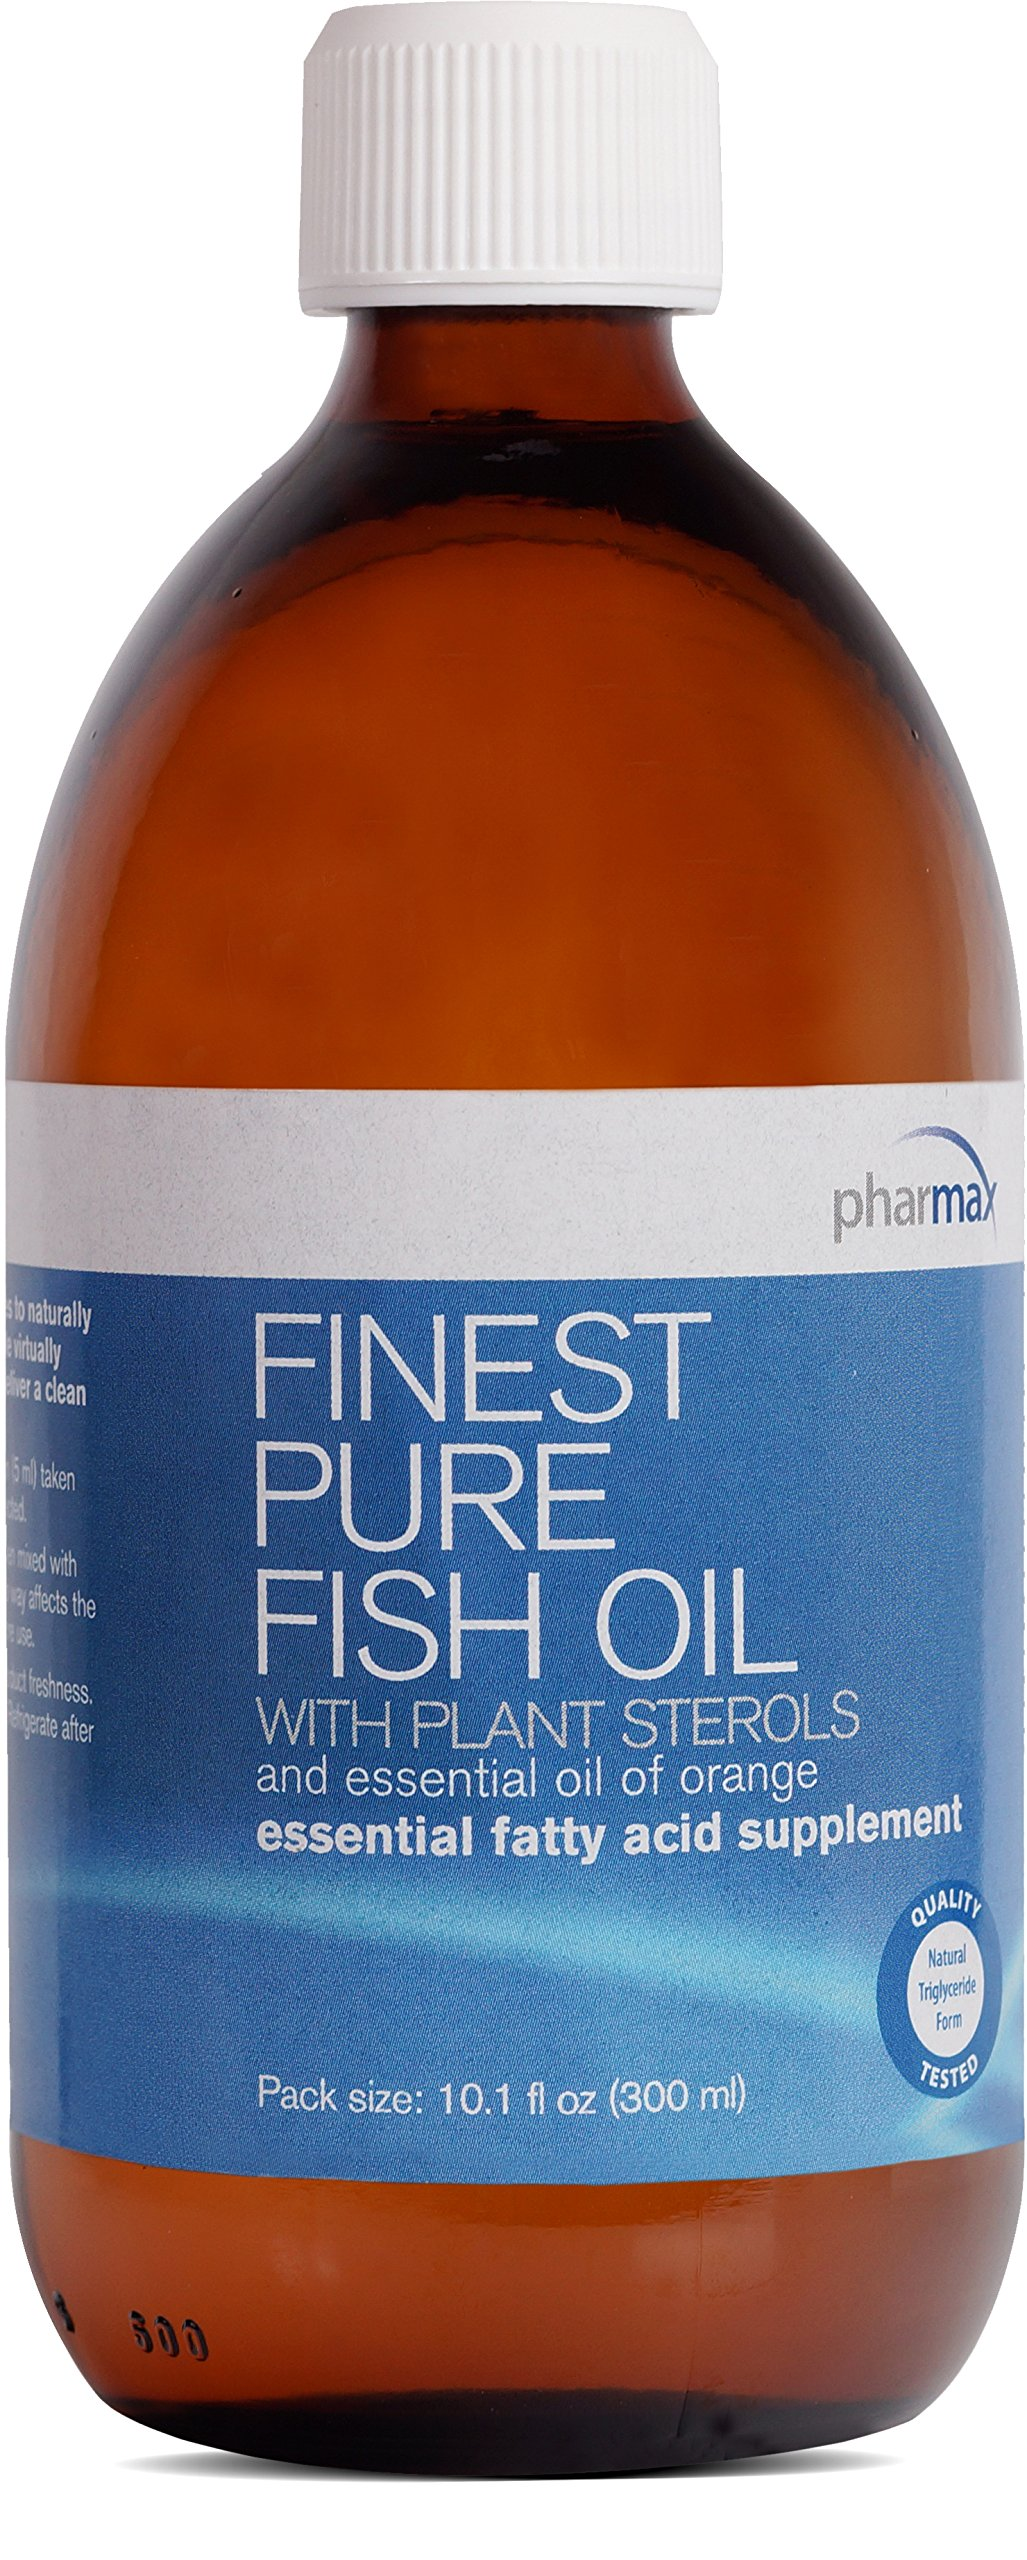 Pharmax - Finest Pure Fish Oil - with Plant Sterols and Essential Oil of Orange to Support Optimal Cardiovascular Health* - 10.1 fl oz (300 ml)